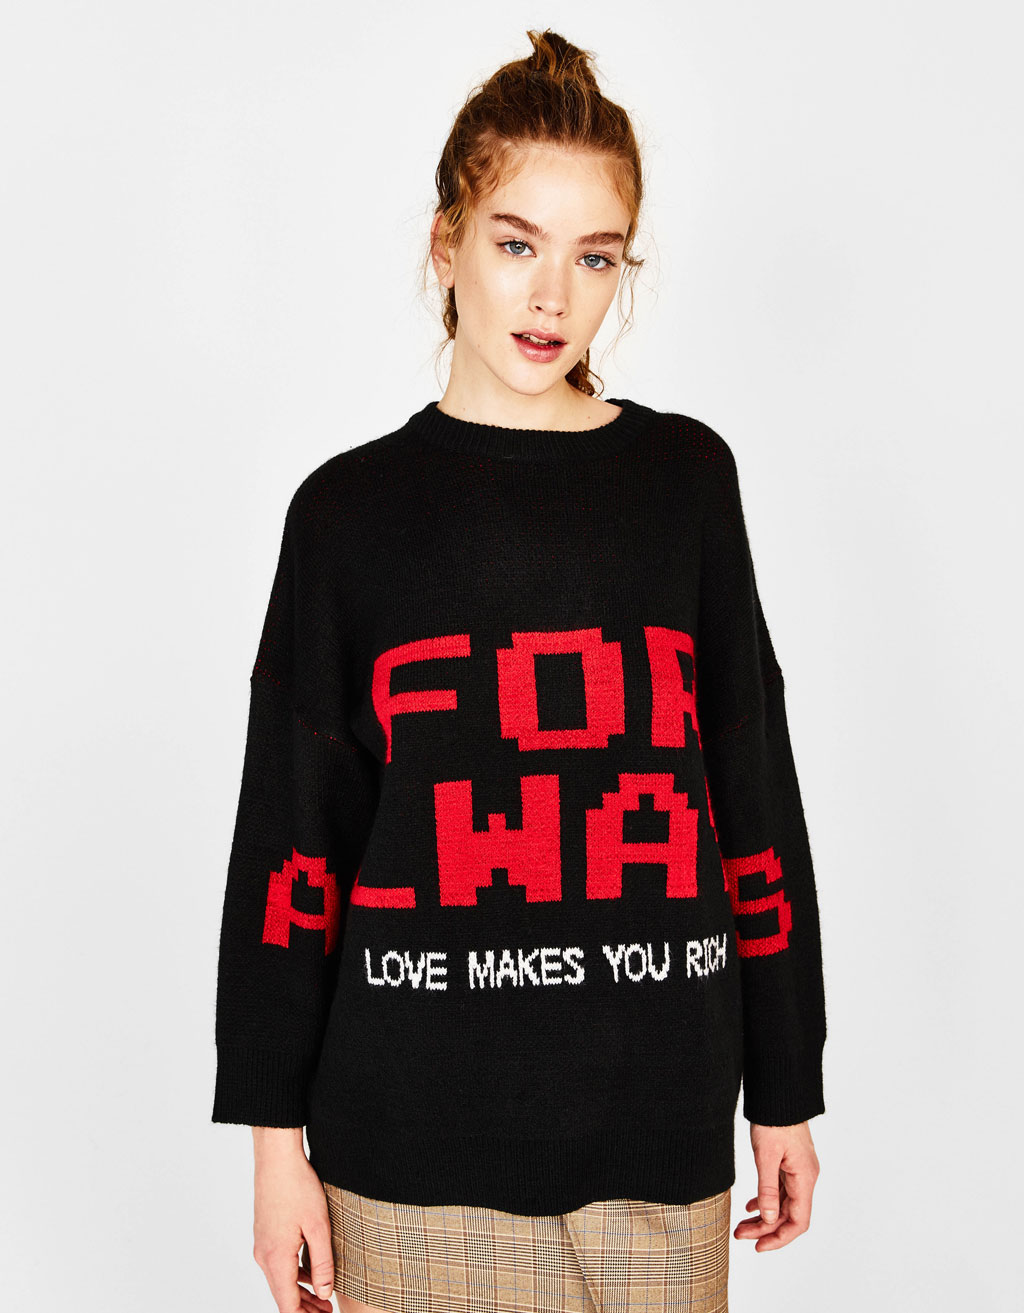 Oversized sweater with slogan